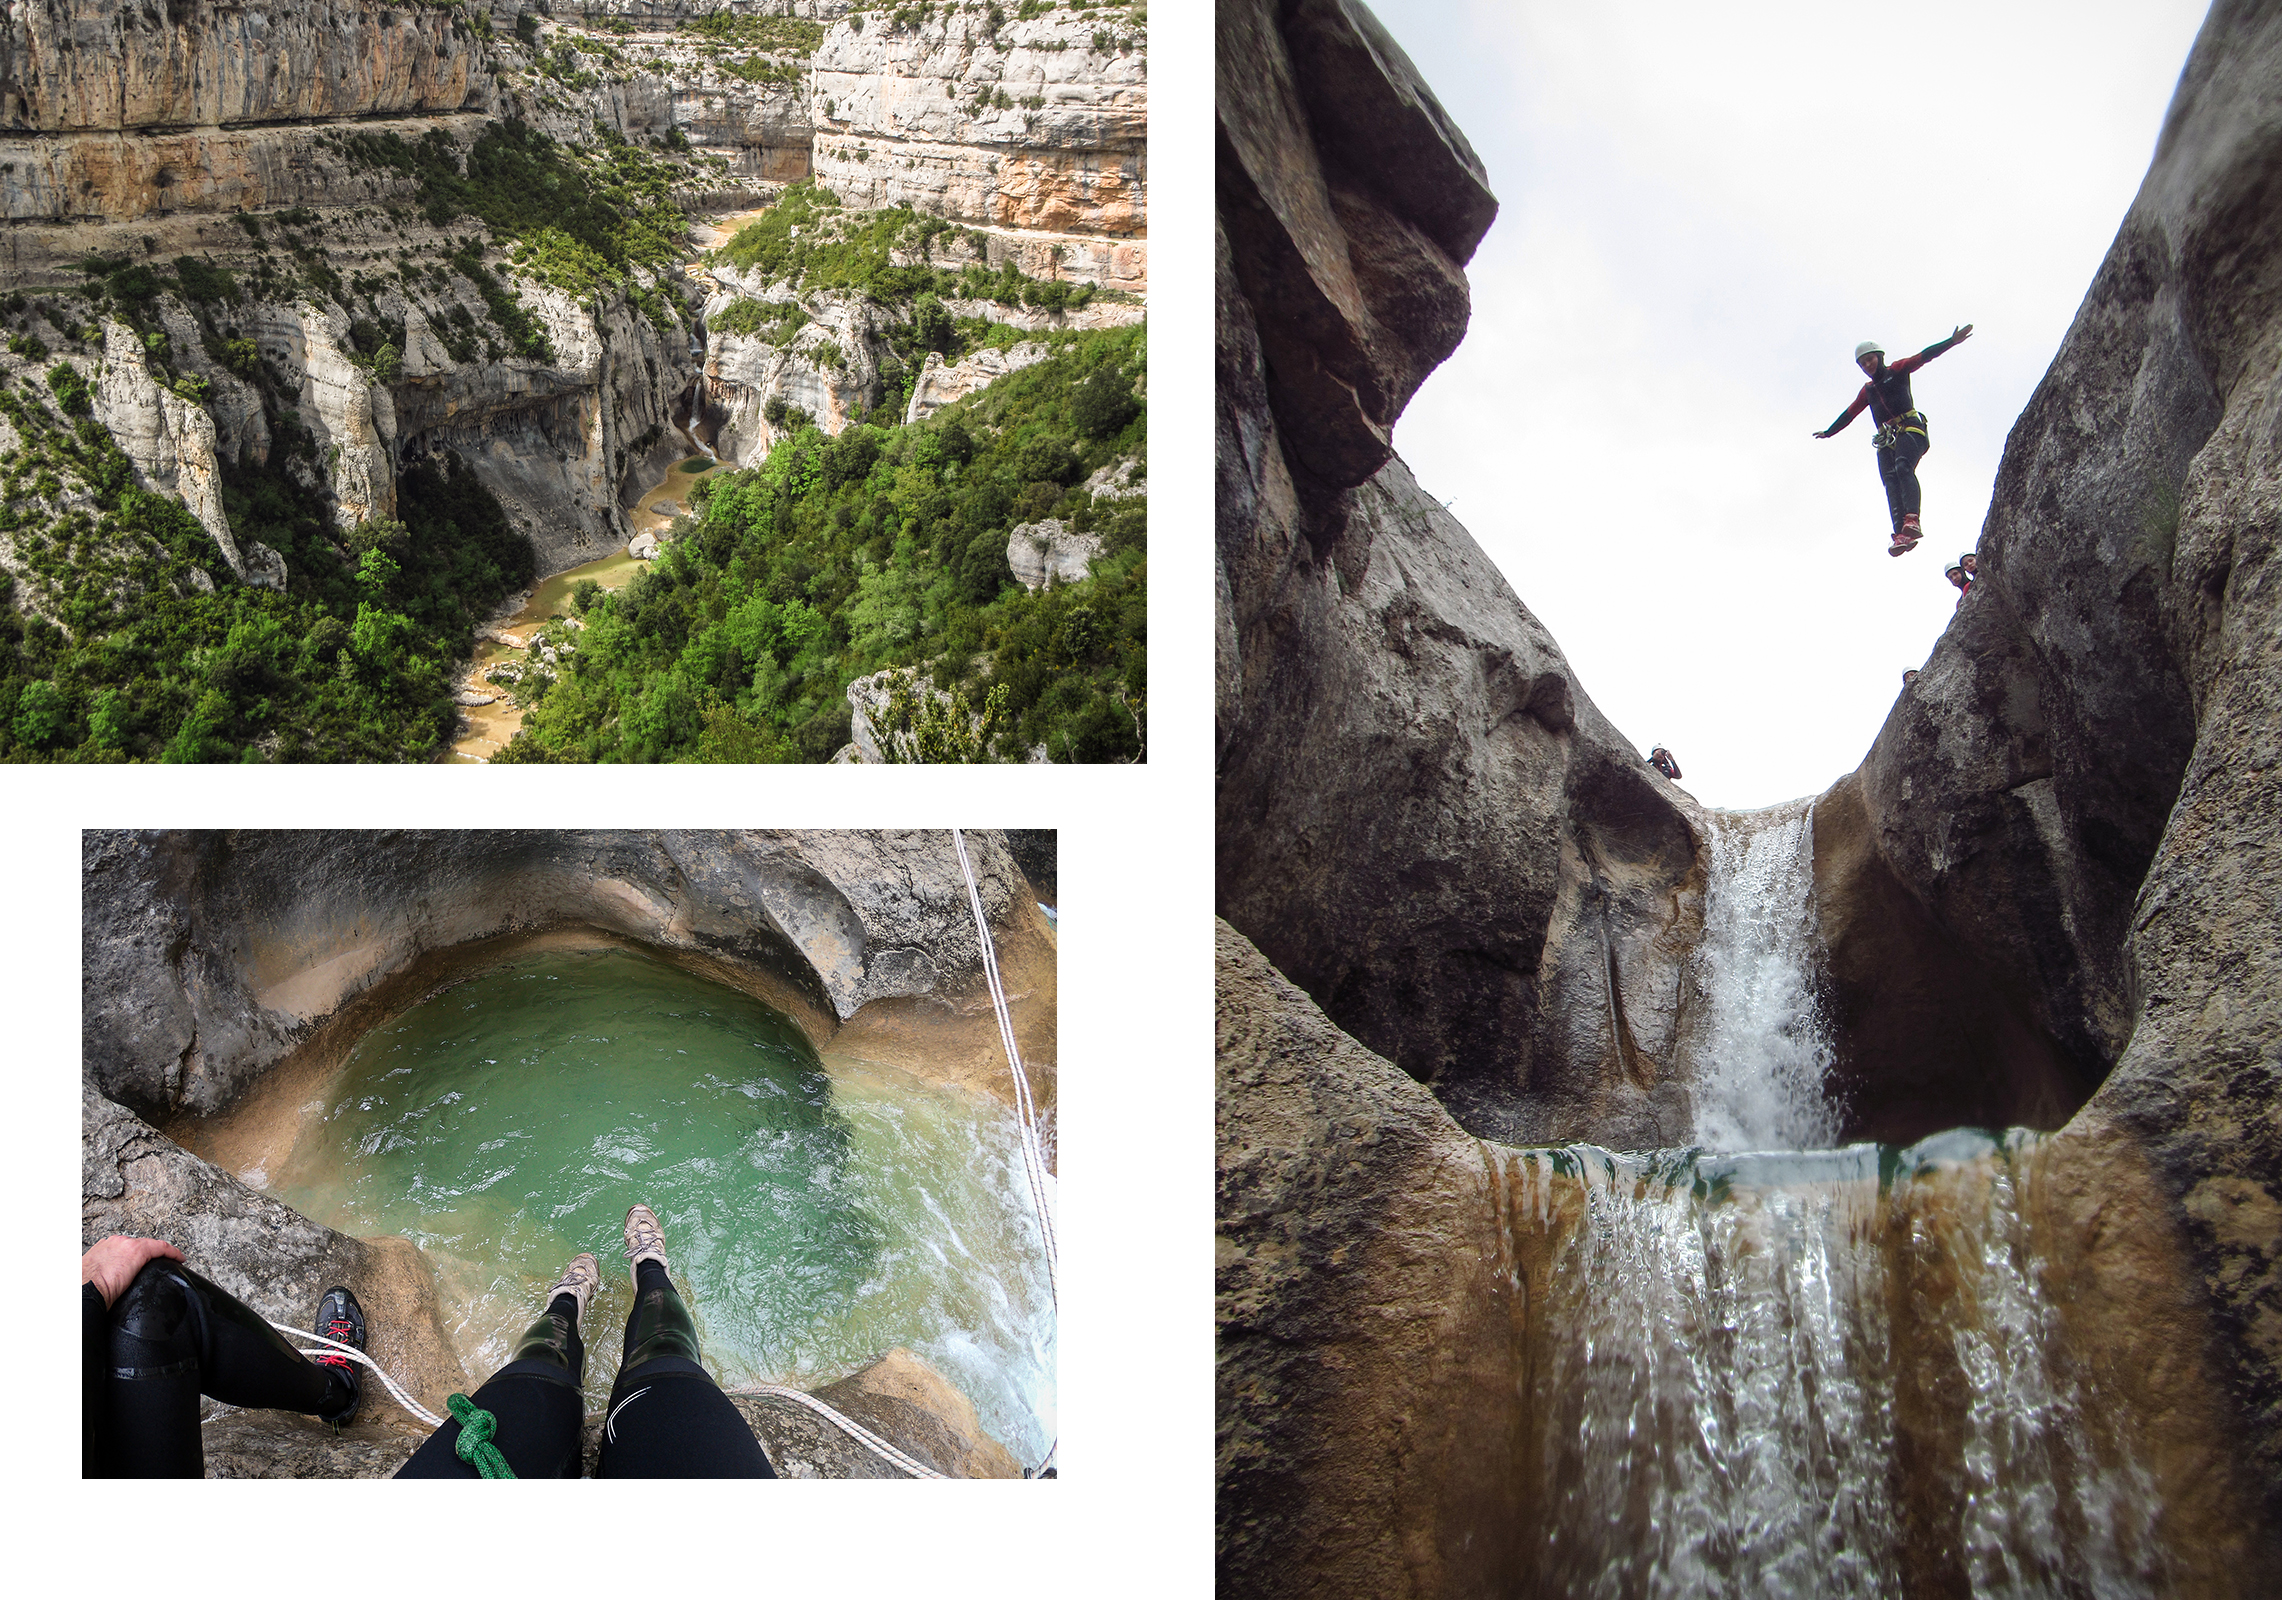 Canyoning Sierra de Guara, quel guide choisir ?